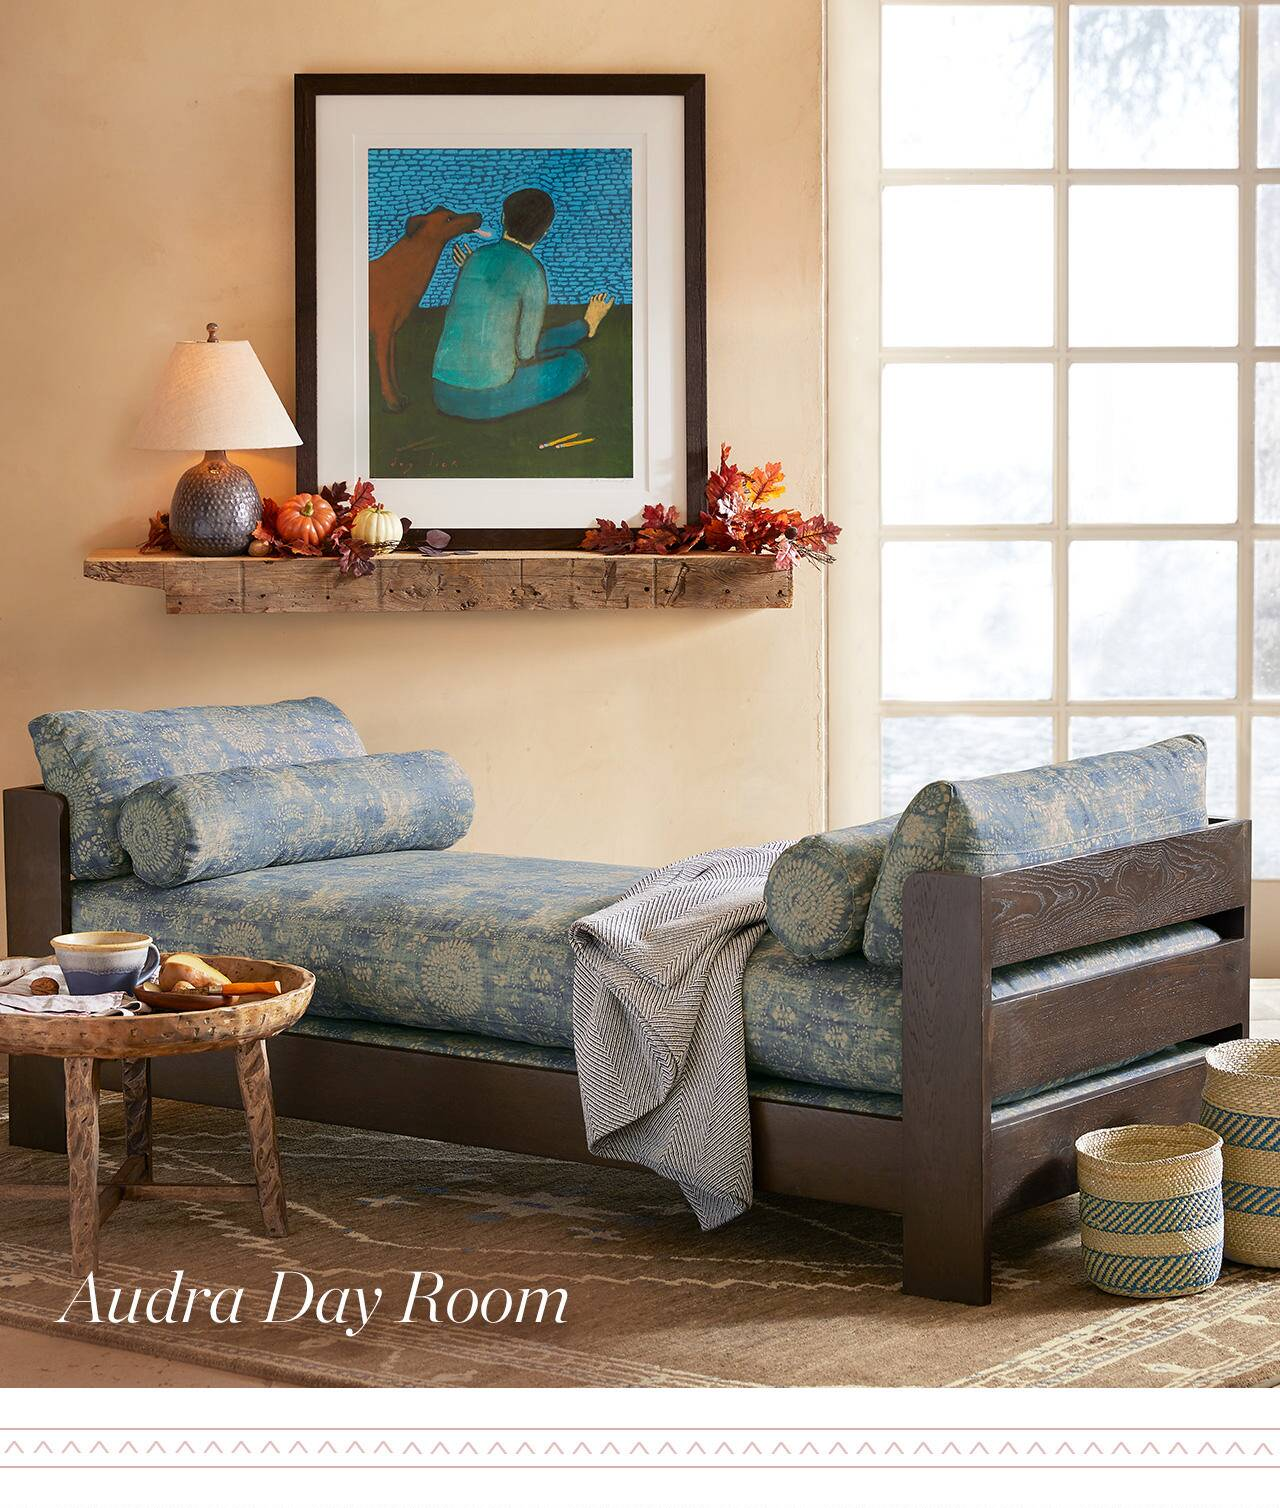 Audra Day Room